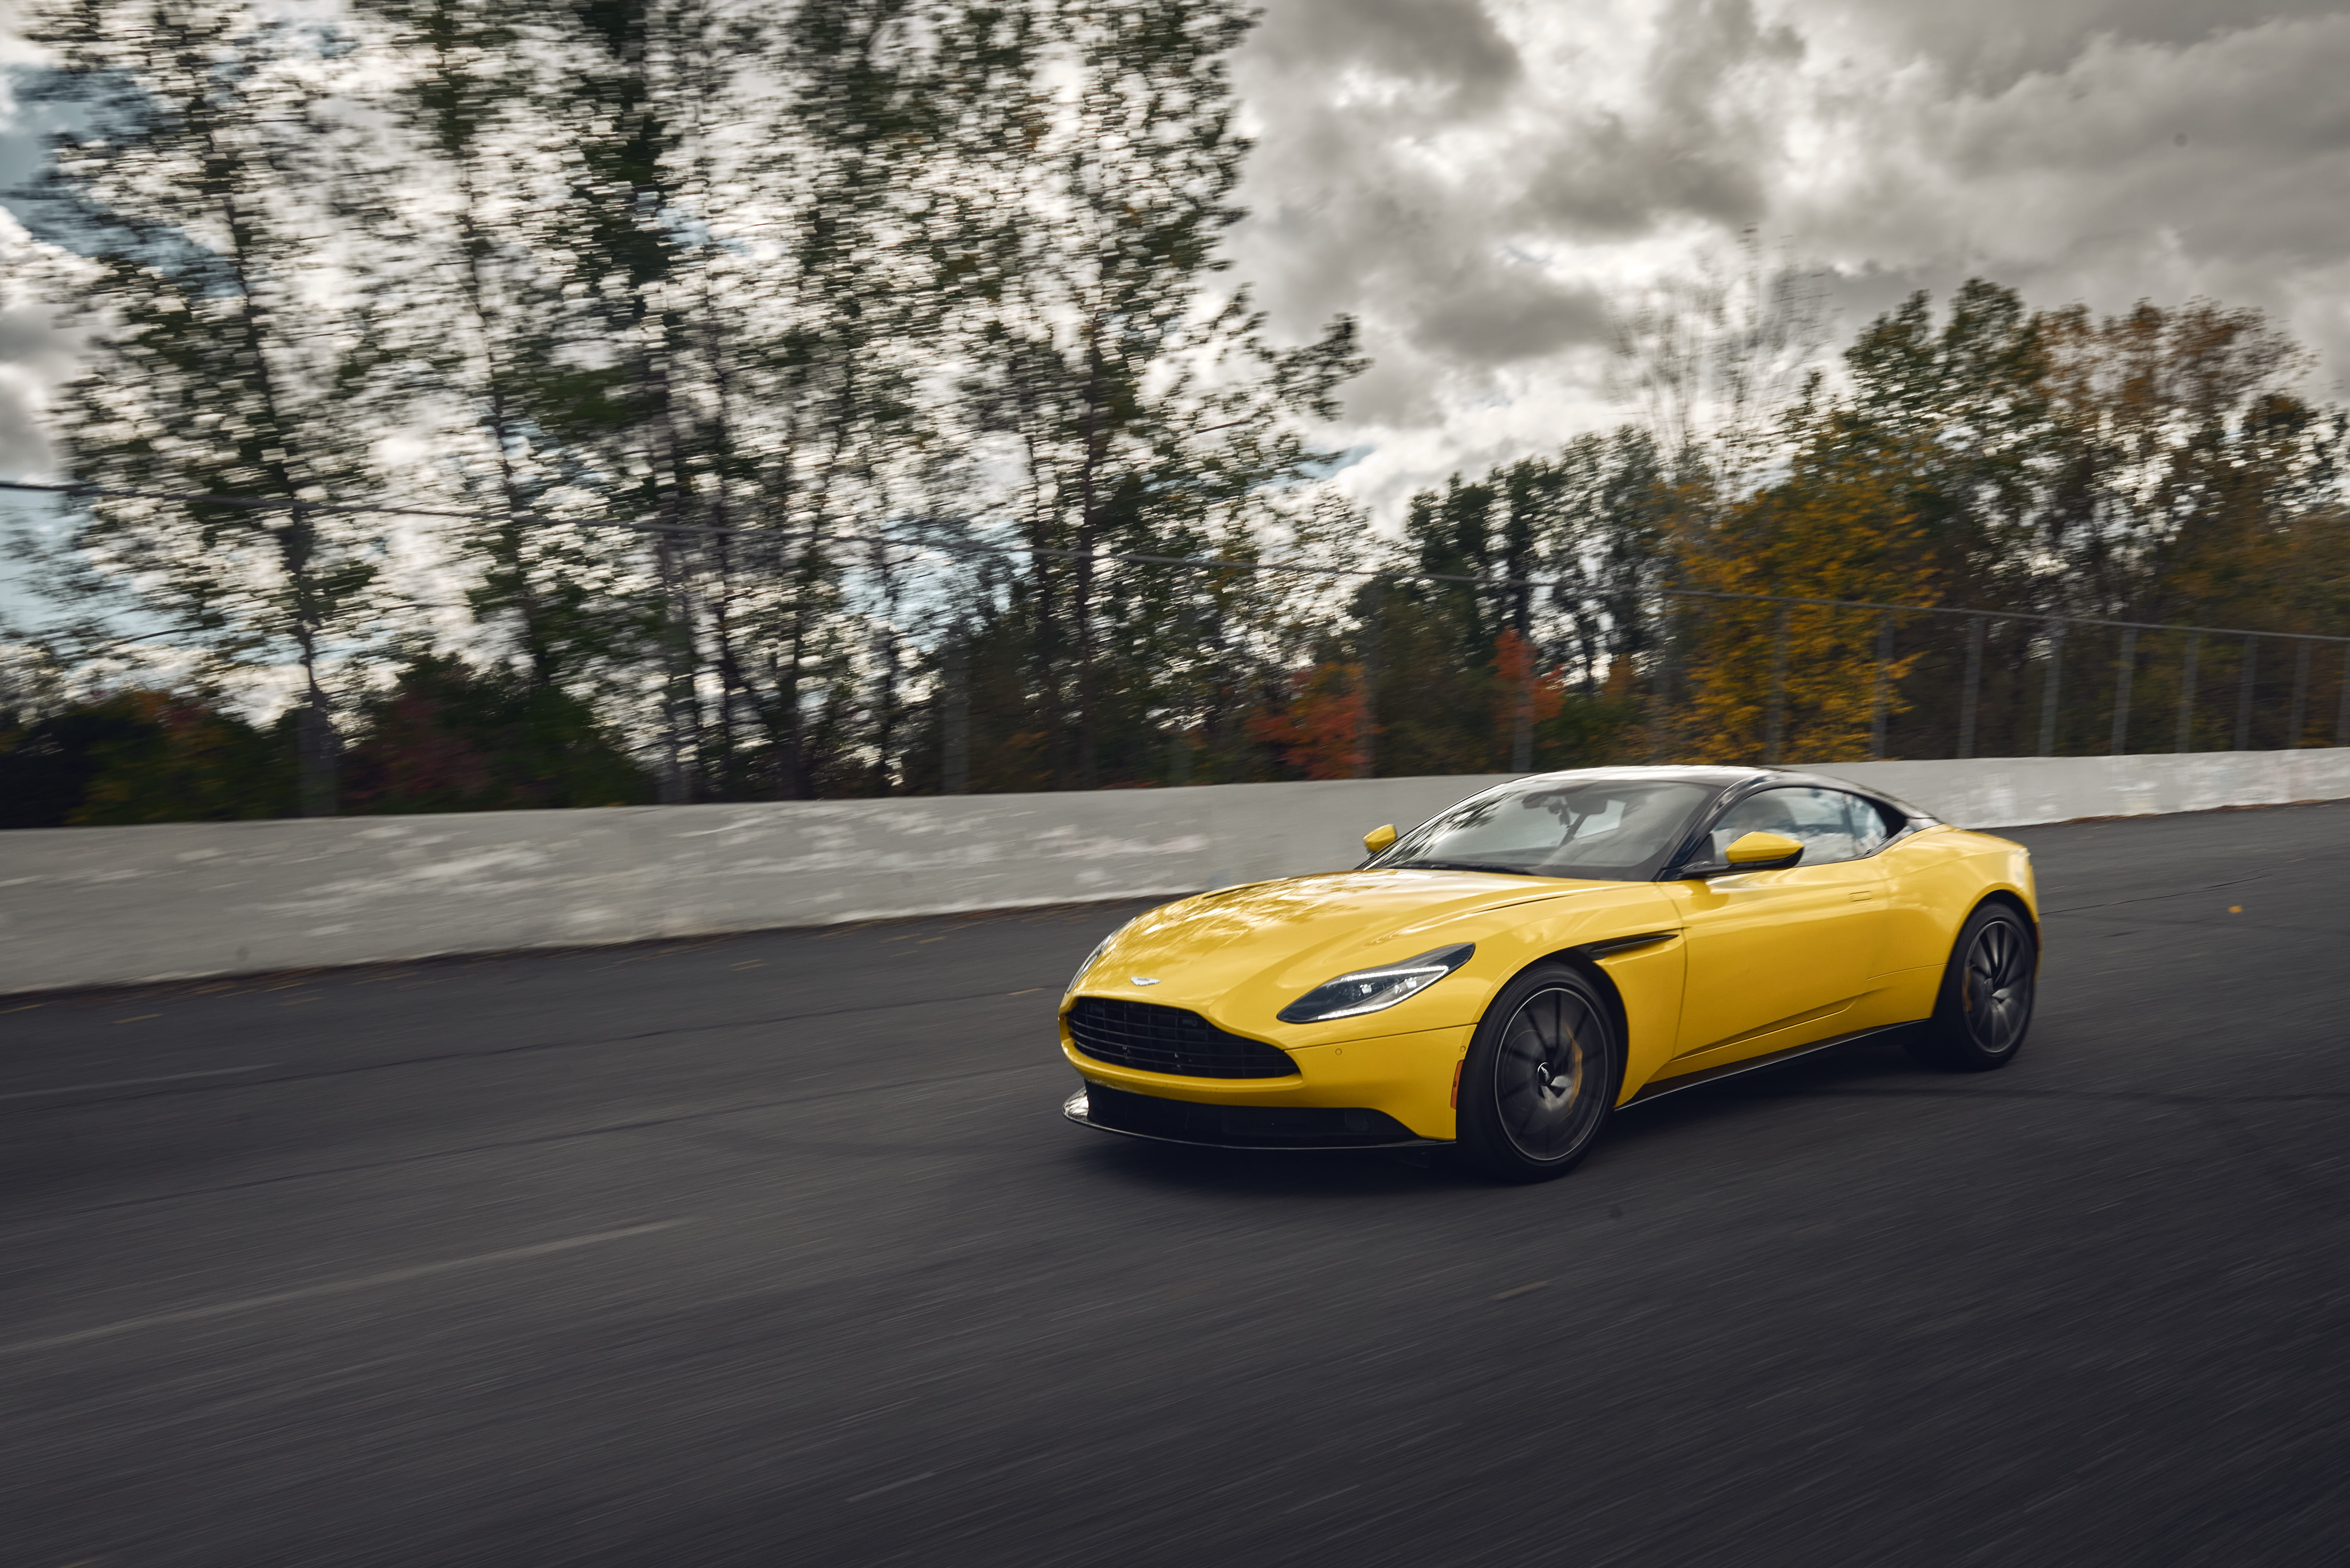 2020 Aston Martin Db11 V8 Makes A Compelling Case For Downsizing